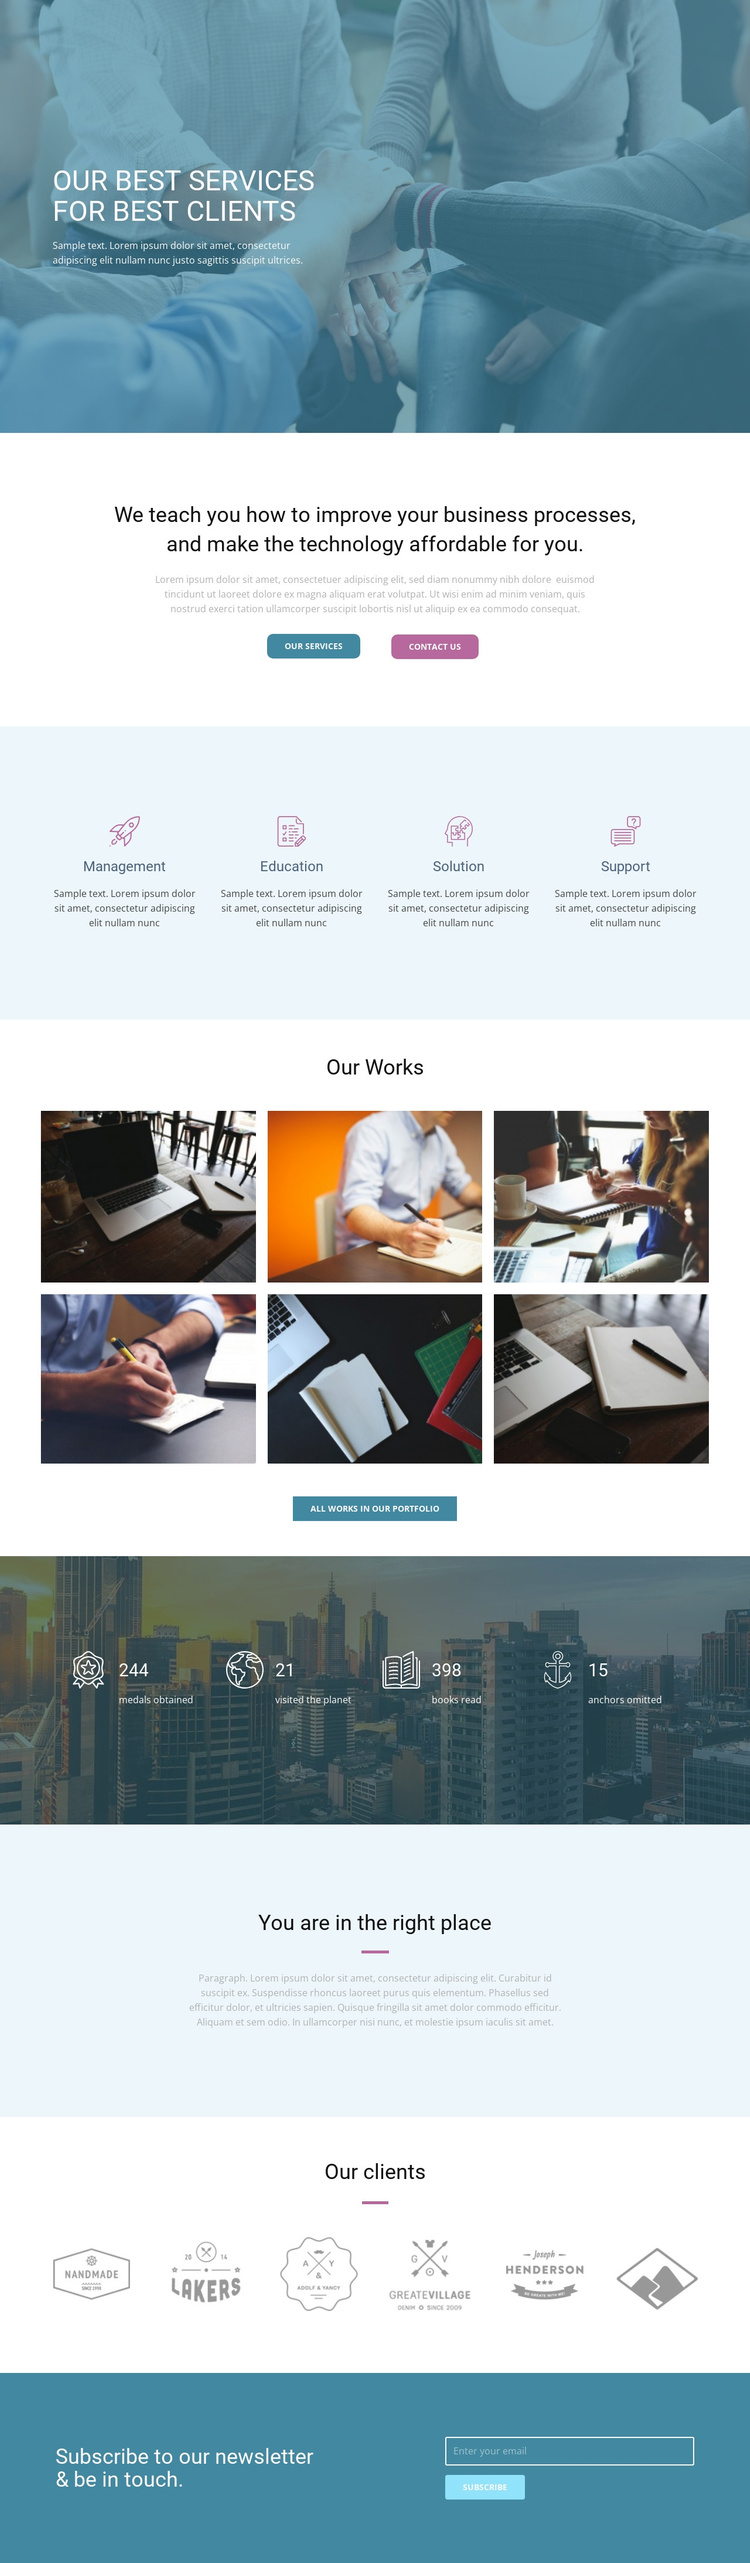 Best services for clients Joomla Template